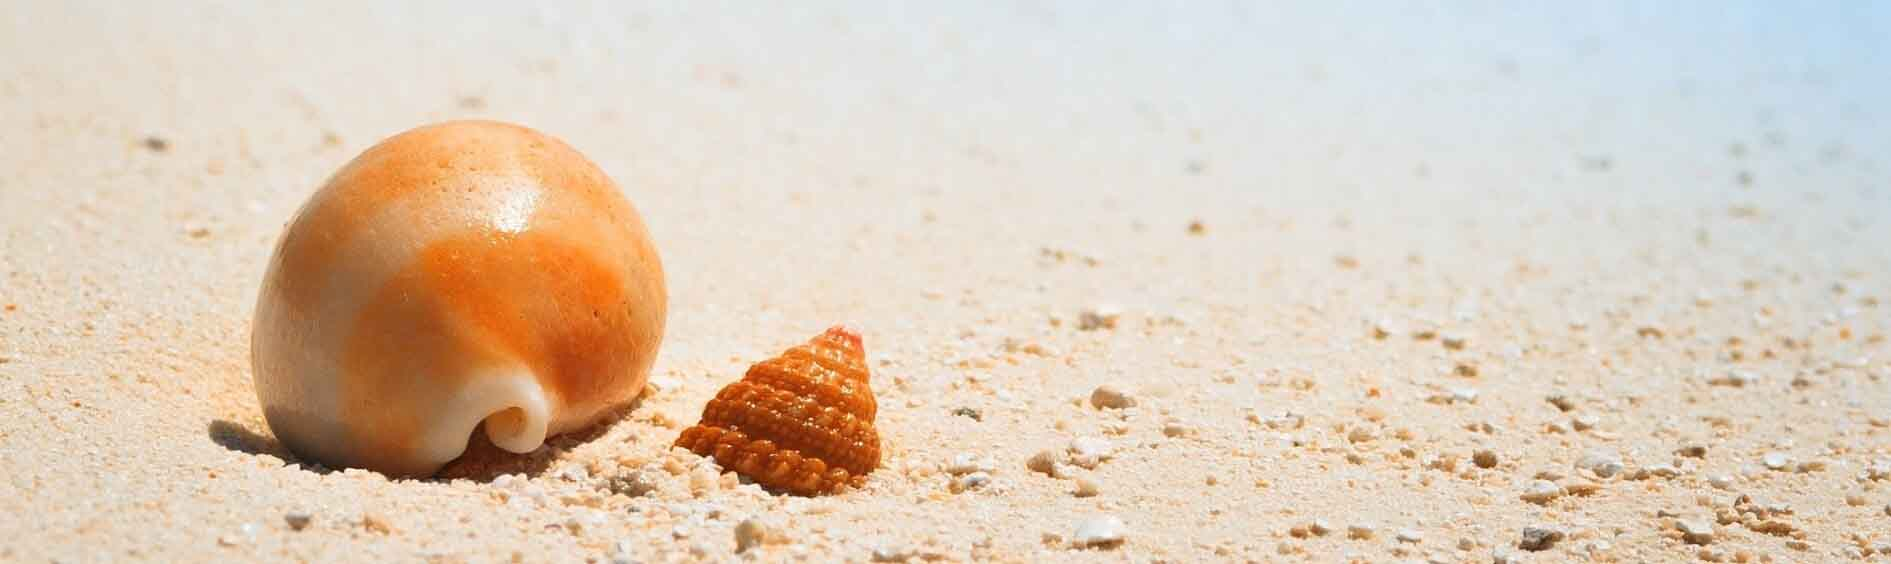 Two orange shells on the beach of tan colored sand